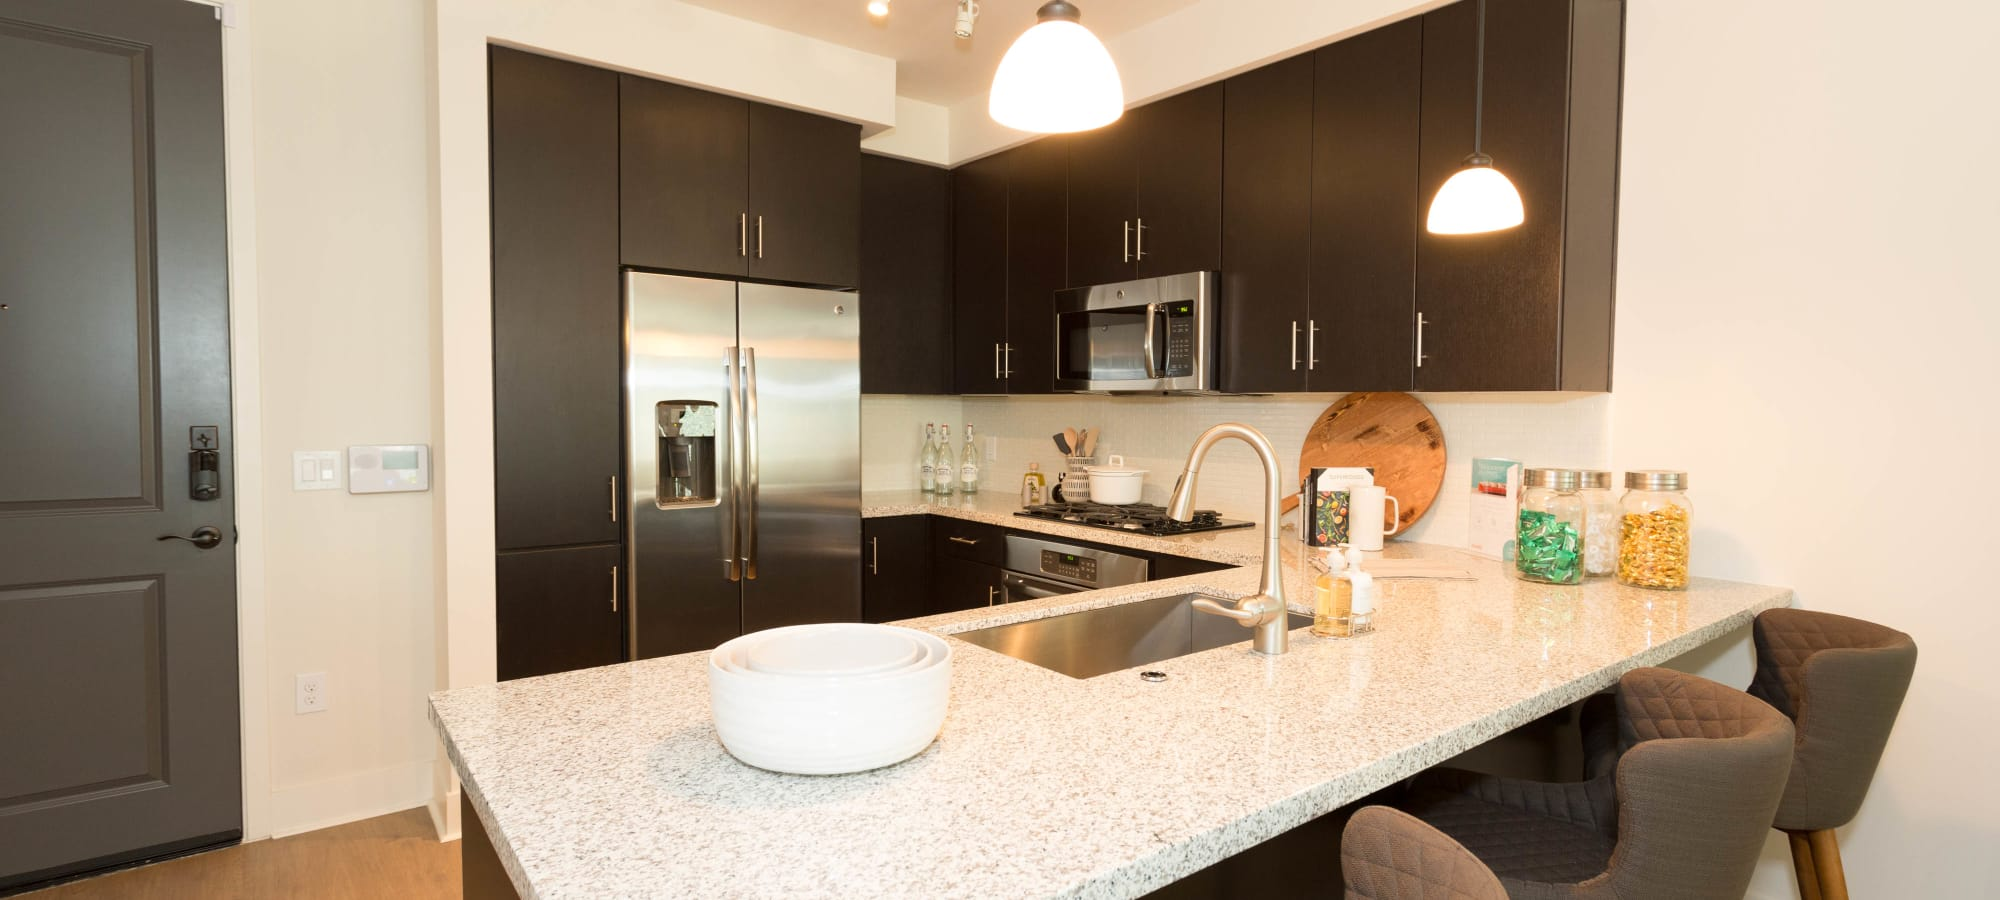 Stainless-steel appliances in model home's kitchen at Avant at Fashion Center in Chandler, Arizona